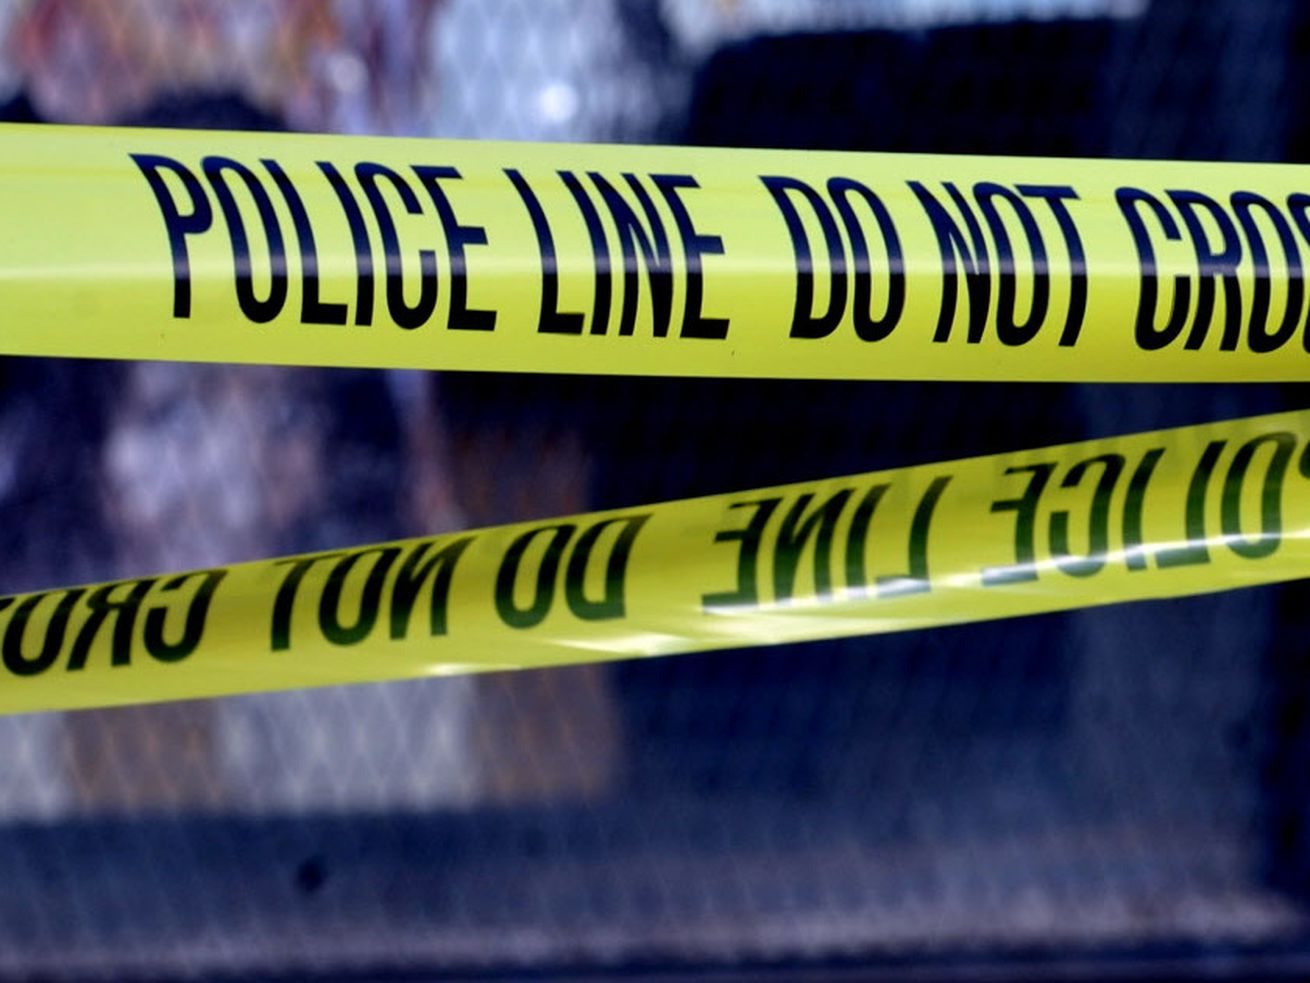 A woman was found dead Feb. 16, 2021 in South Shore.